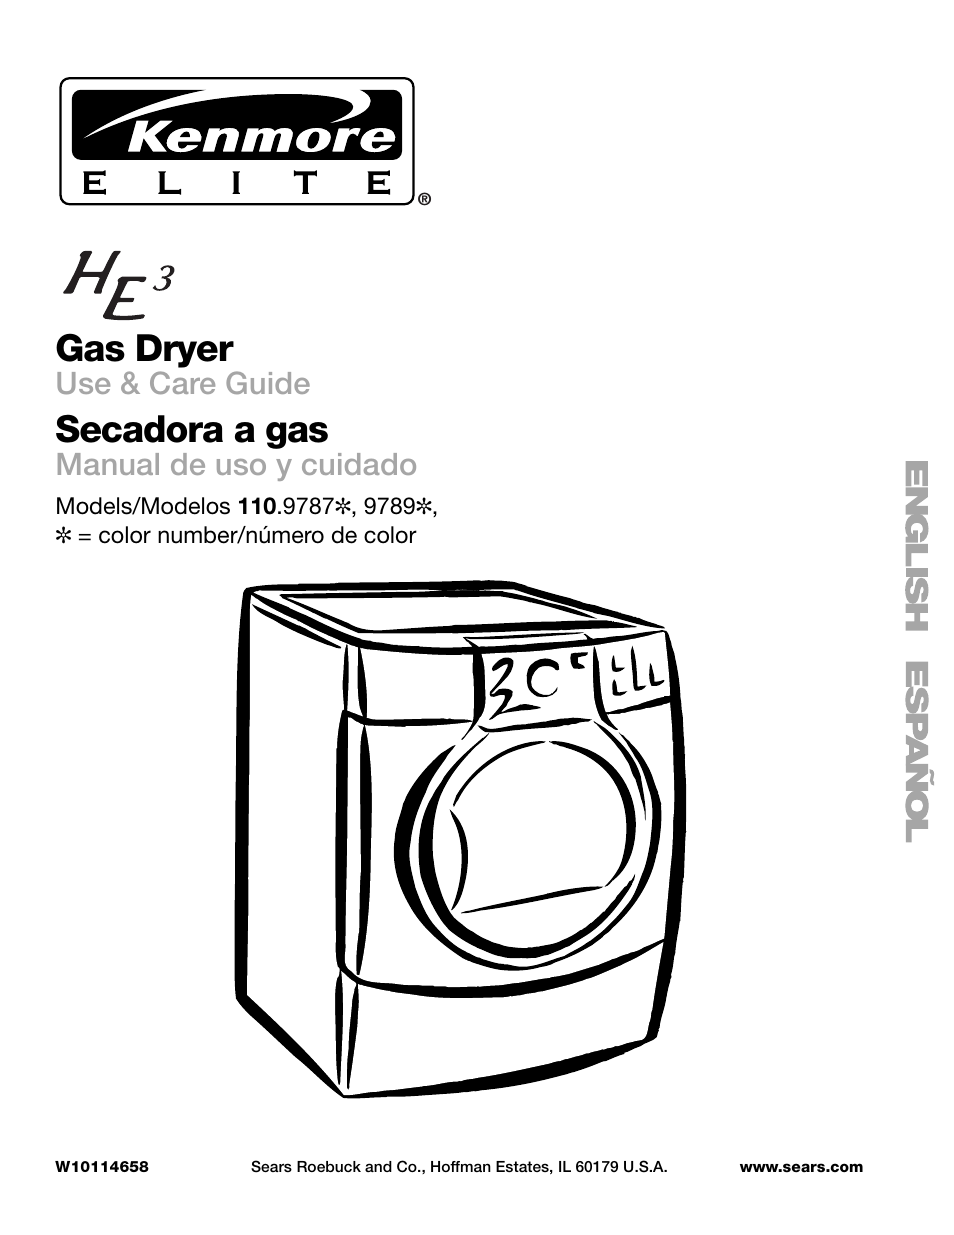 kenmore elite he3 110 9787 user manual 52 pages also for elite rh manualsdir com Kenmore 110 Dryer Repair Manual Kenmore 110 Dryer Repair Manual